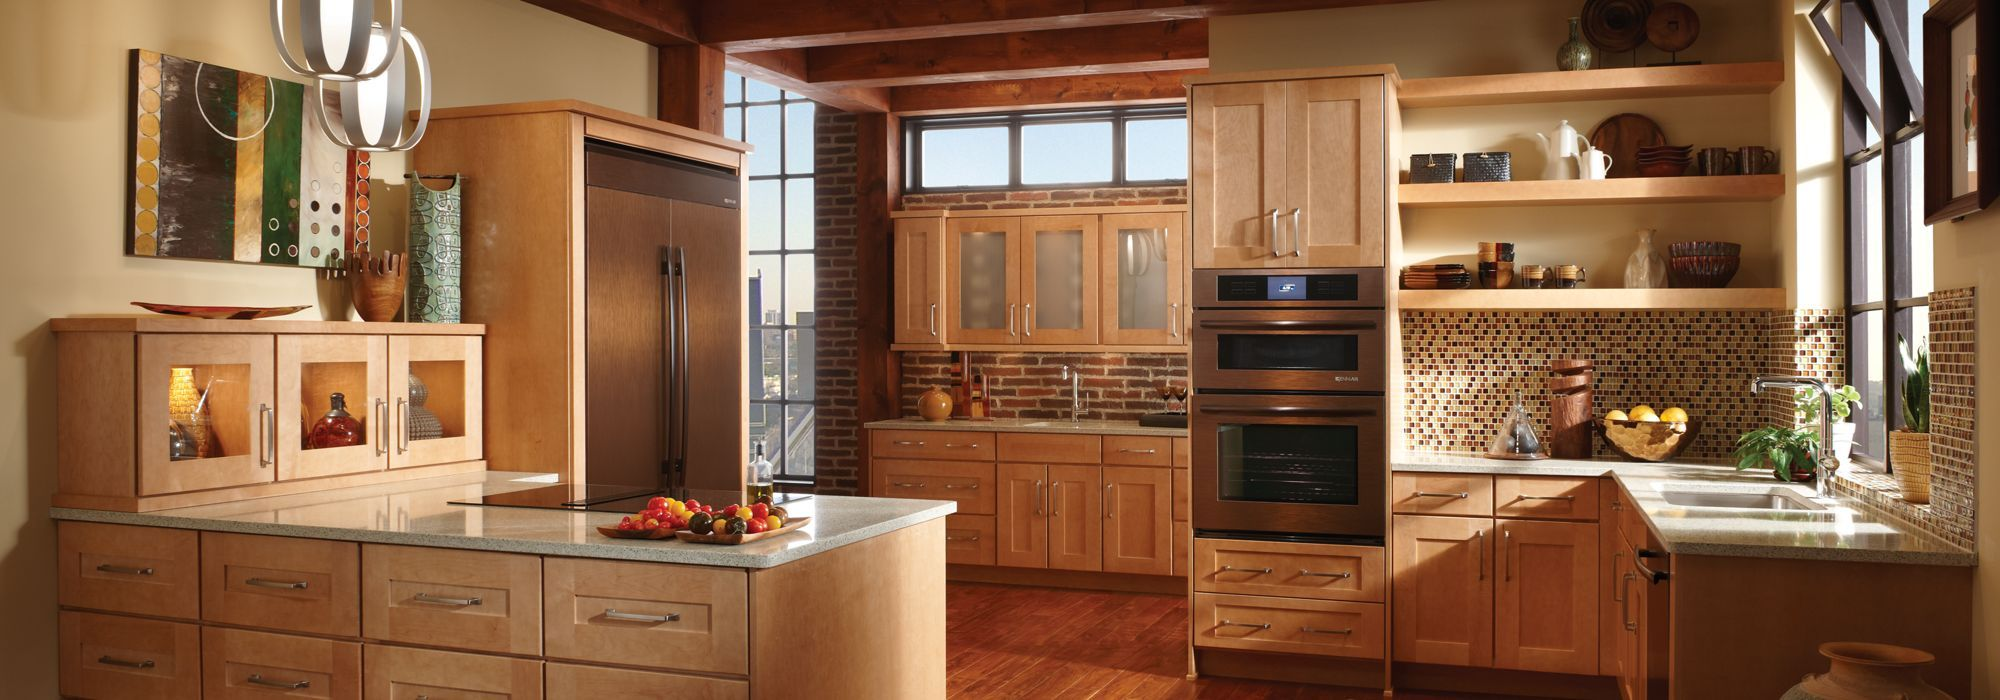 RIGBY_OA03 (2000×700) | Kitchen cabinets, Hickory kitchen ...